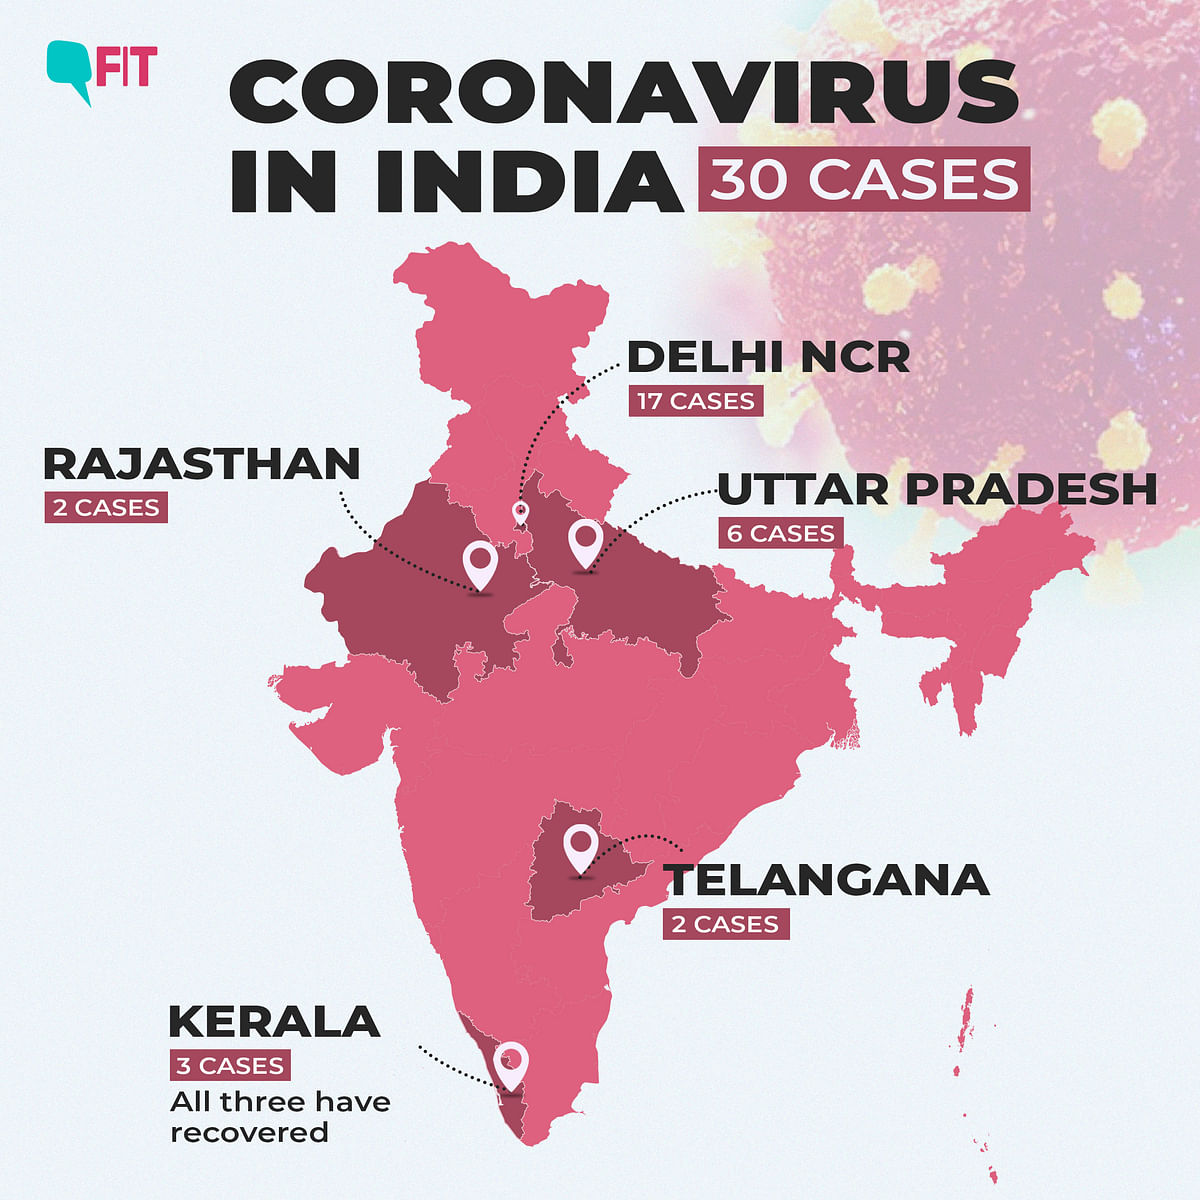 COVID-19 India Update: 30 Cases, Italians Shifted to Medanta